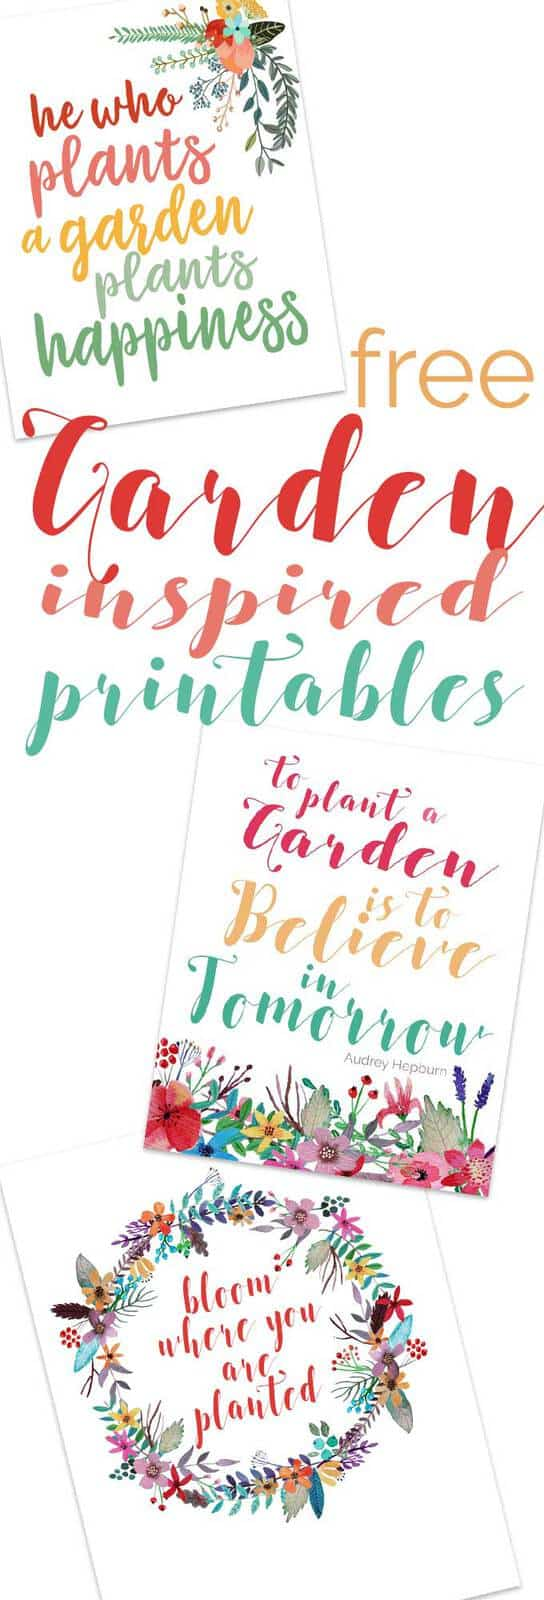 Free Garden Inspired printables to decorate your home are perfect for a spring or summer decor update or framed as a gift idea for the gardener in your life!